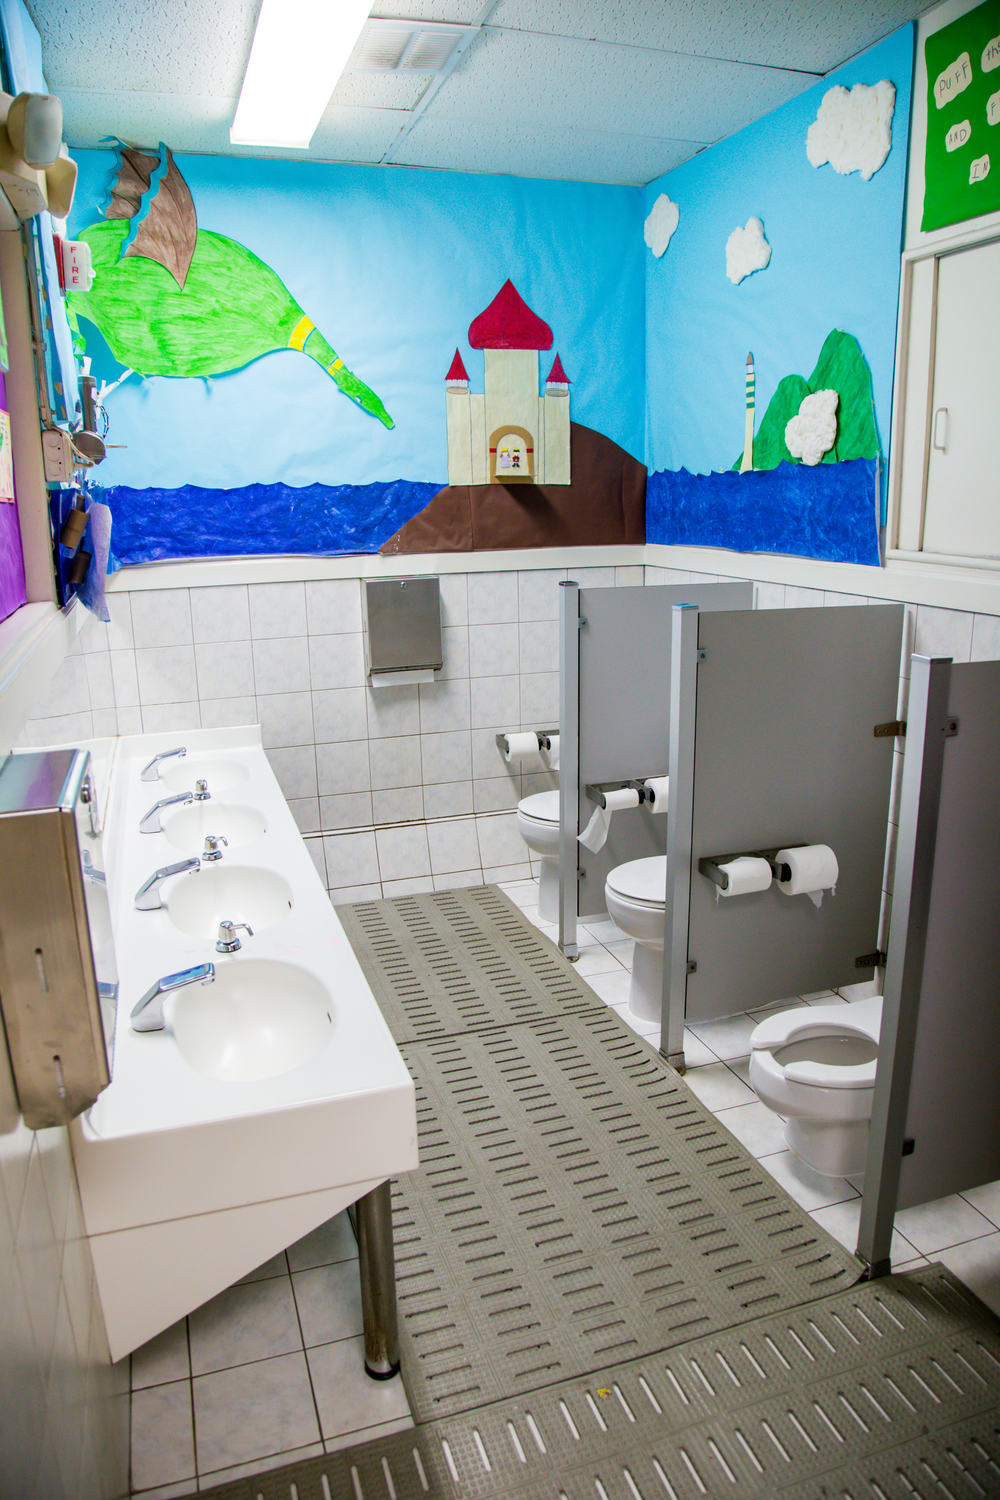 The Daisy Room's child-friendly bathroom, always decorated with colorful artwork.